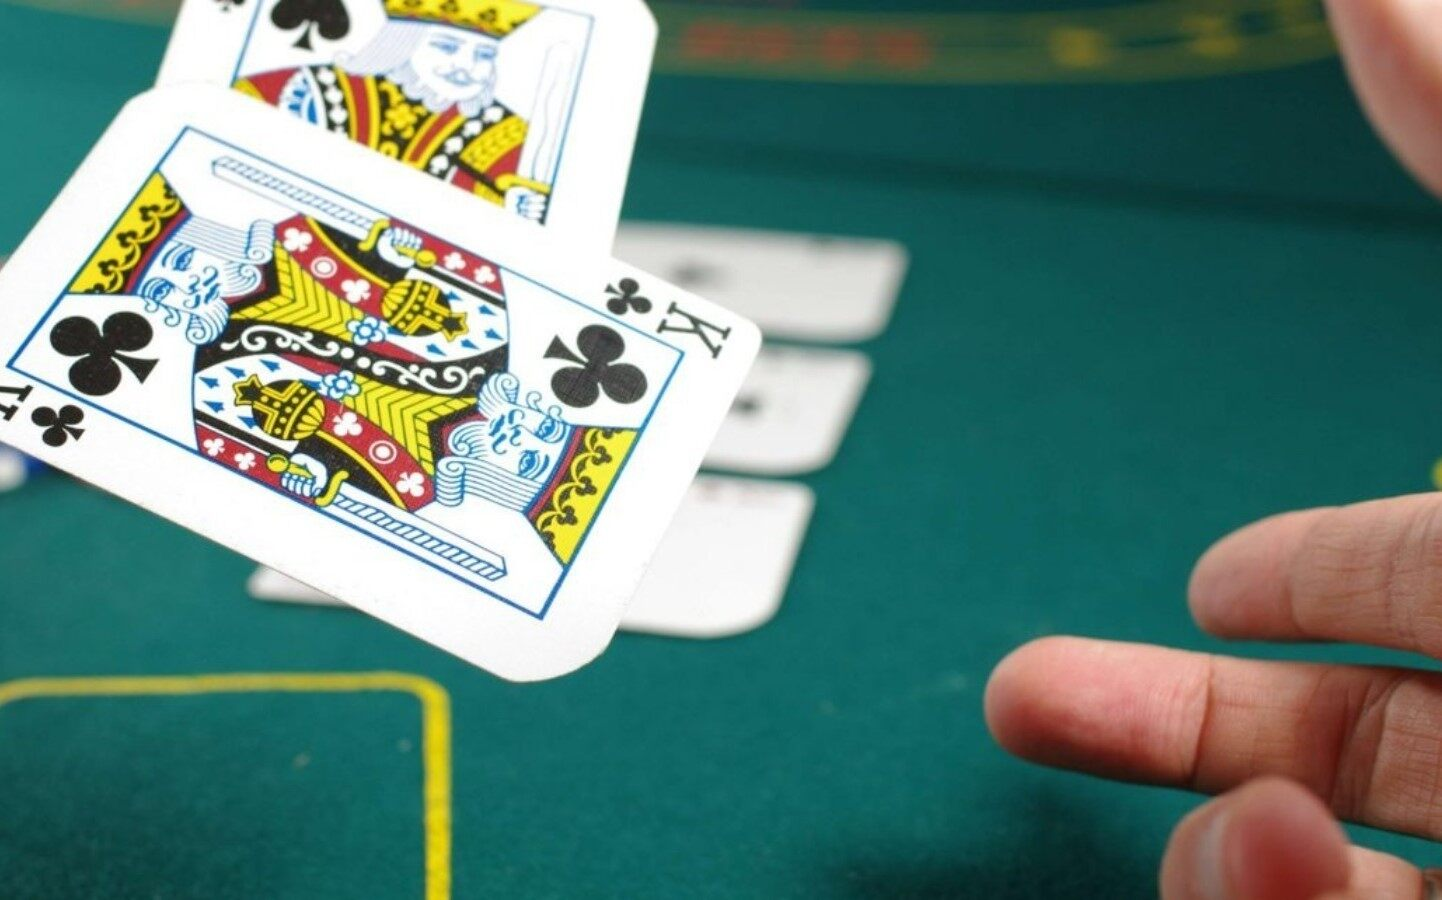 Are Online Gambling Stocks A Good Investment For 2021?